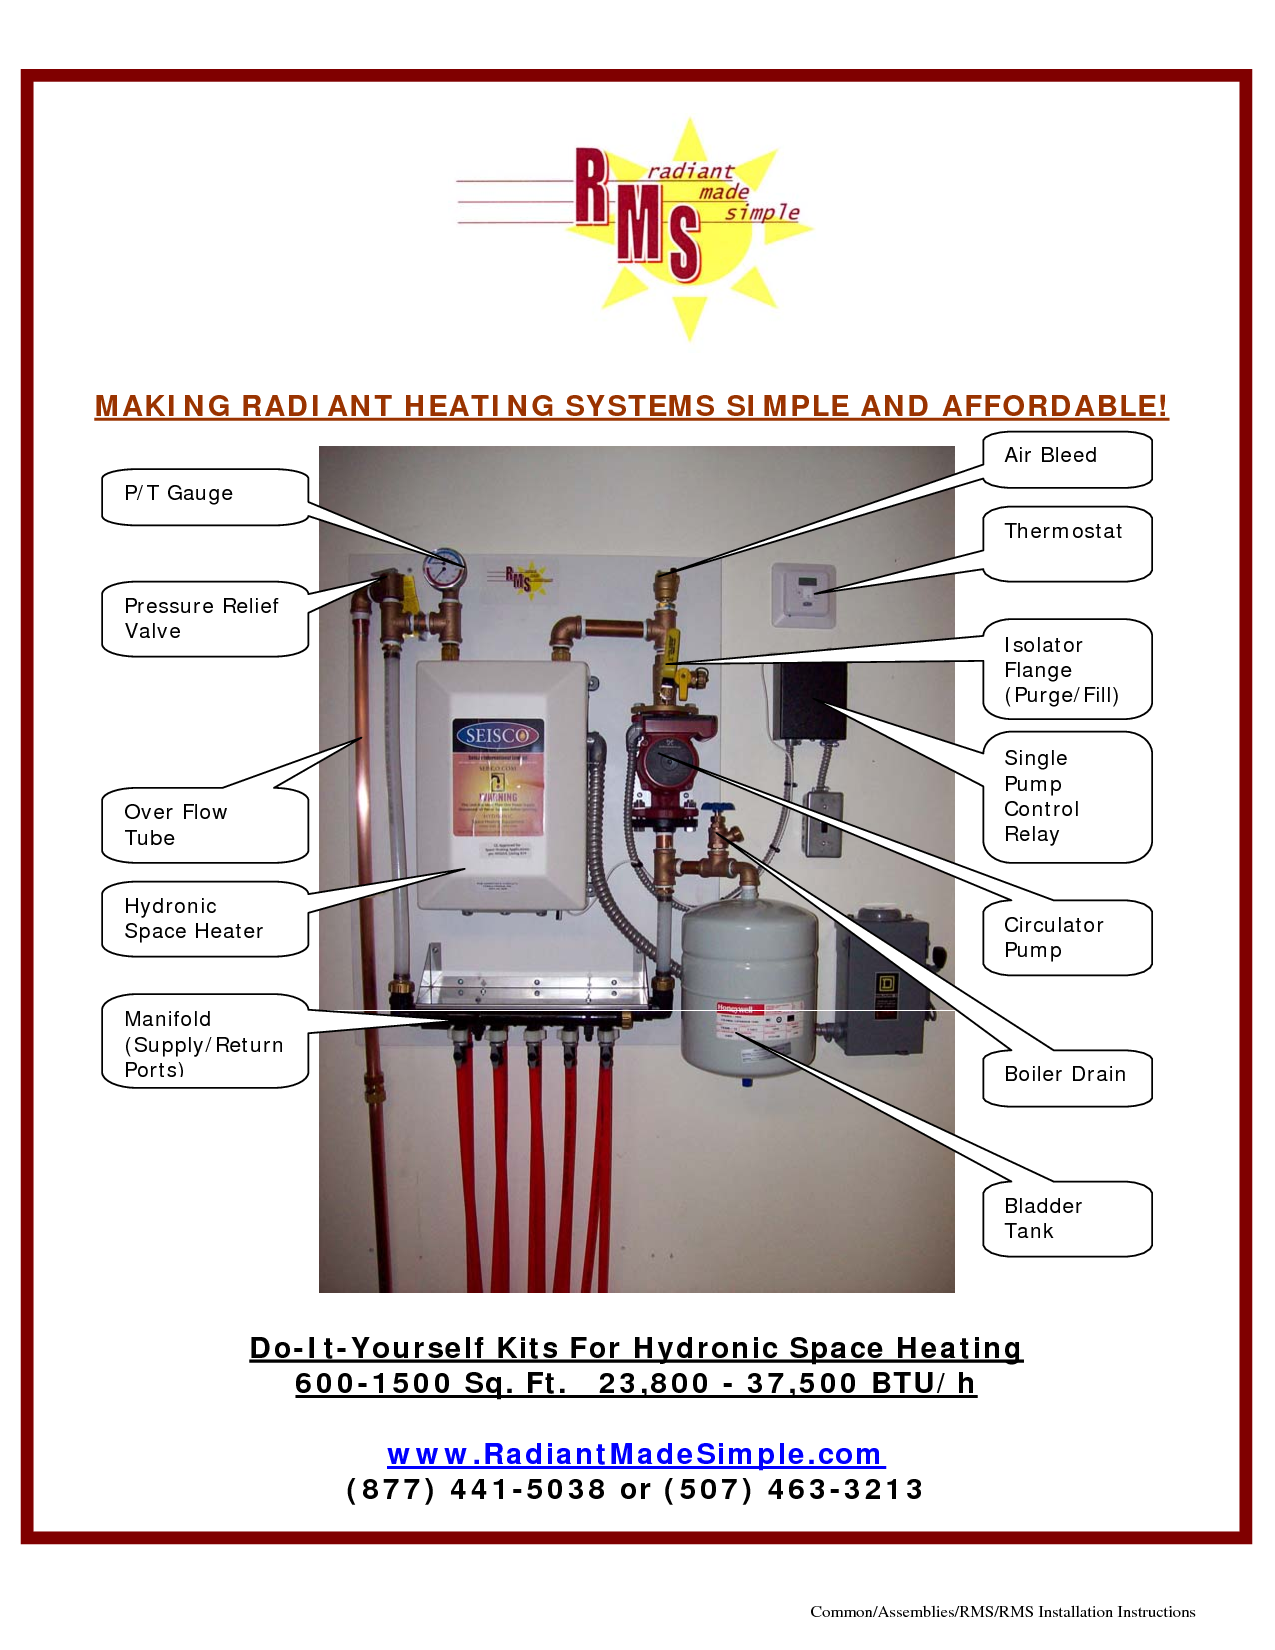 MAKING RADIANT HEATING SYSTEMS SIMPLE AND AFFORDABLE Do It